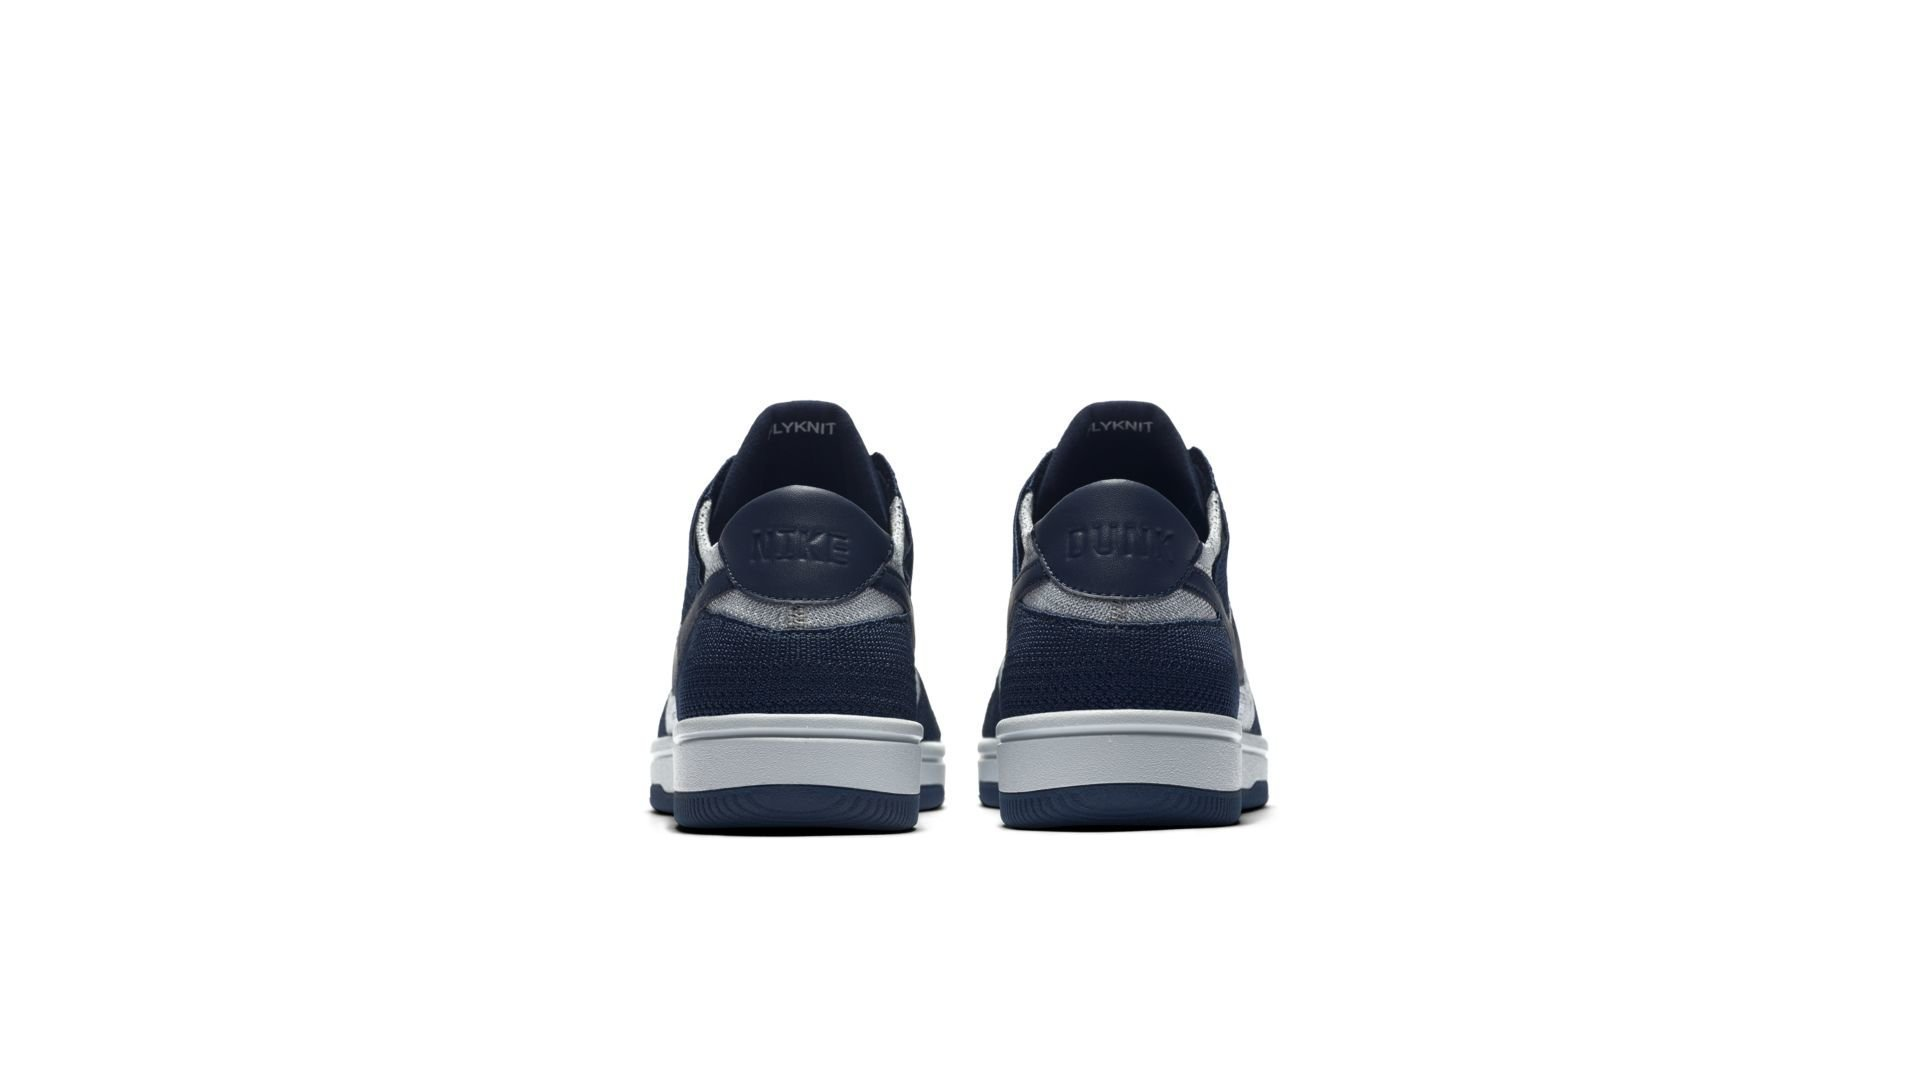 Nike Dunk Low Flyknit College Navy Pure Platinum (917746-400)